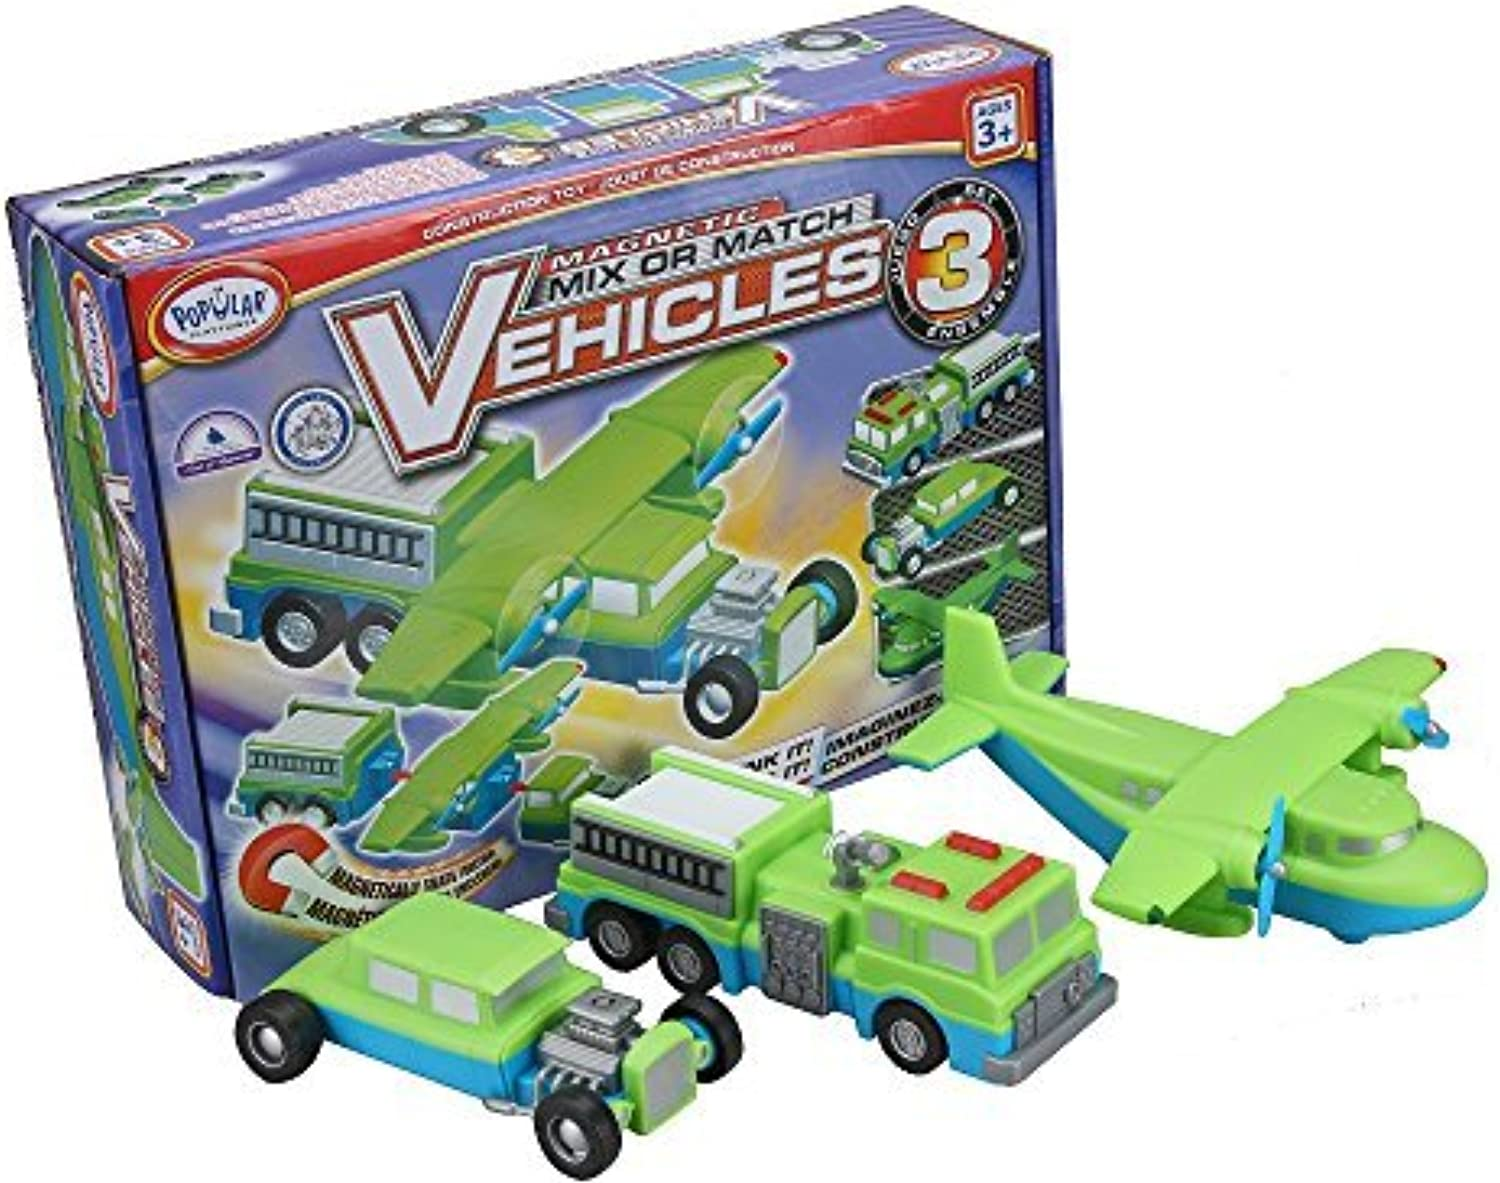 Popular Playthings Mix Or Match 3 Vehicle by Popular Playthings